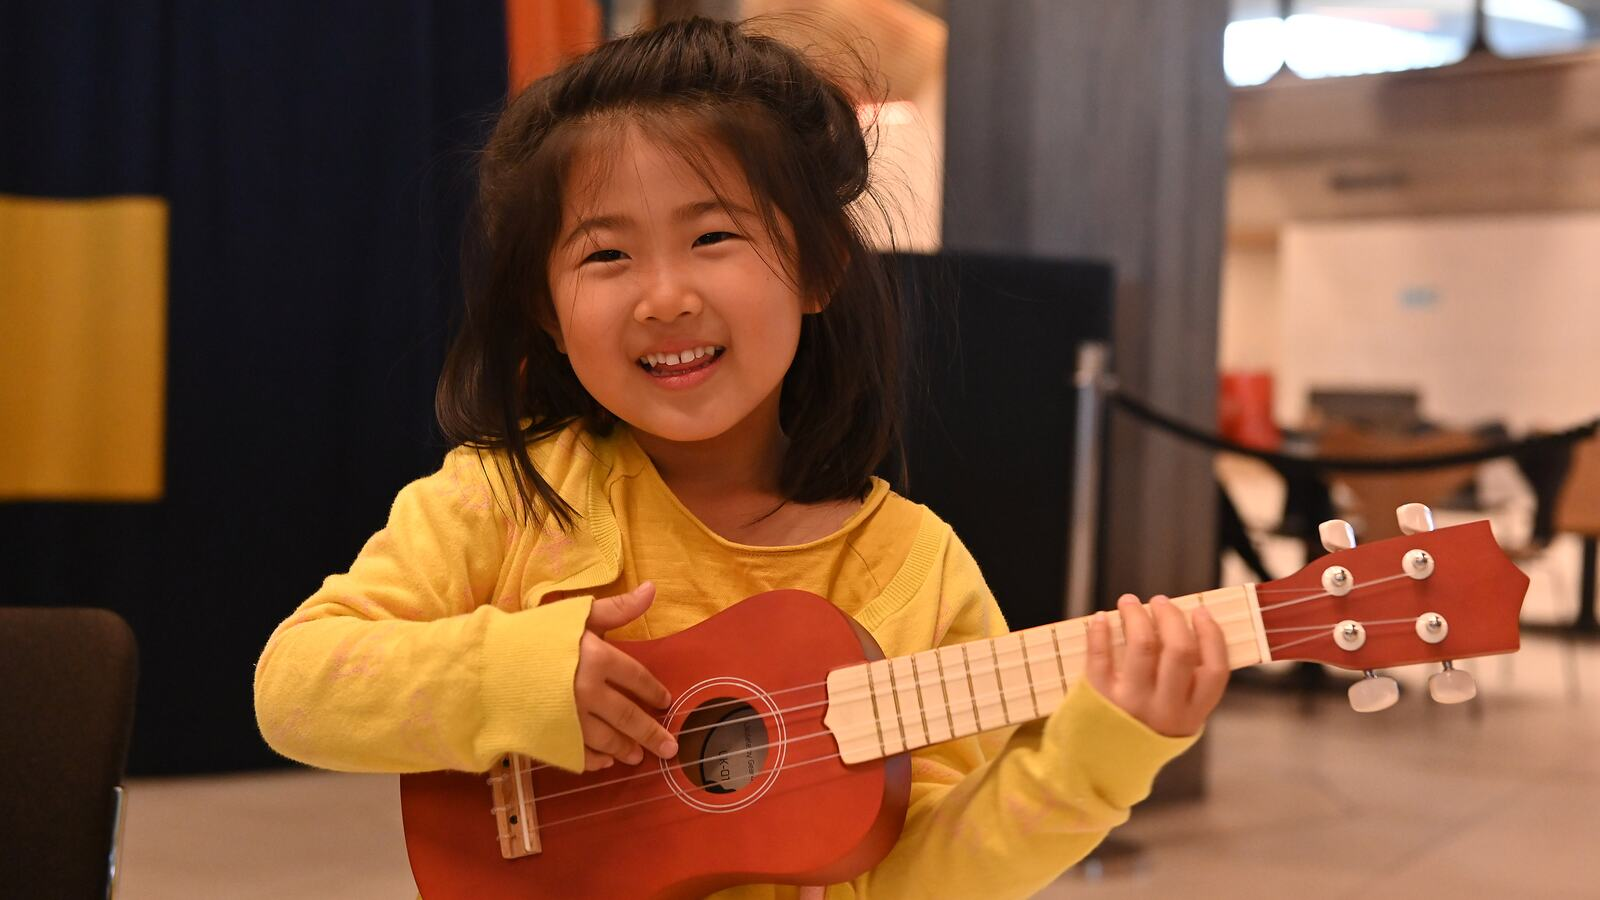 Child playing the ukulele in Queen Elizabeth Hall Foyer